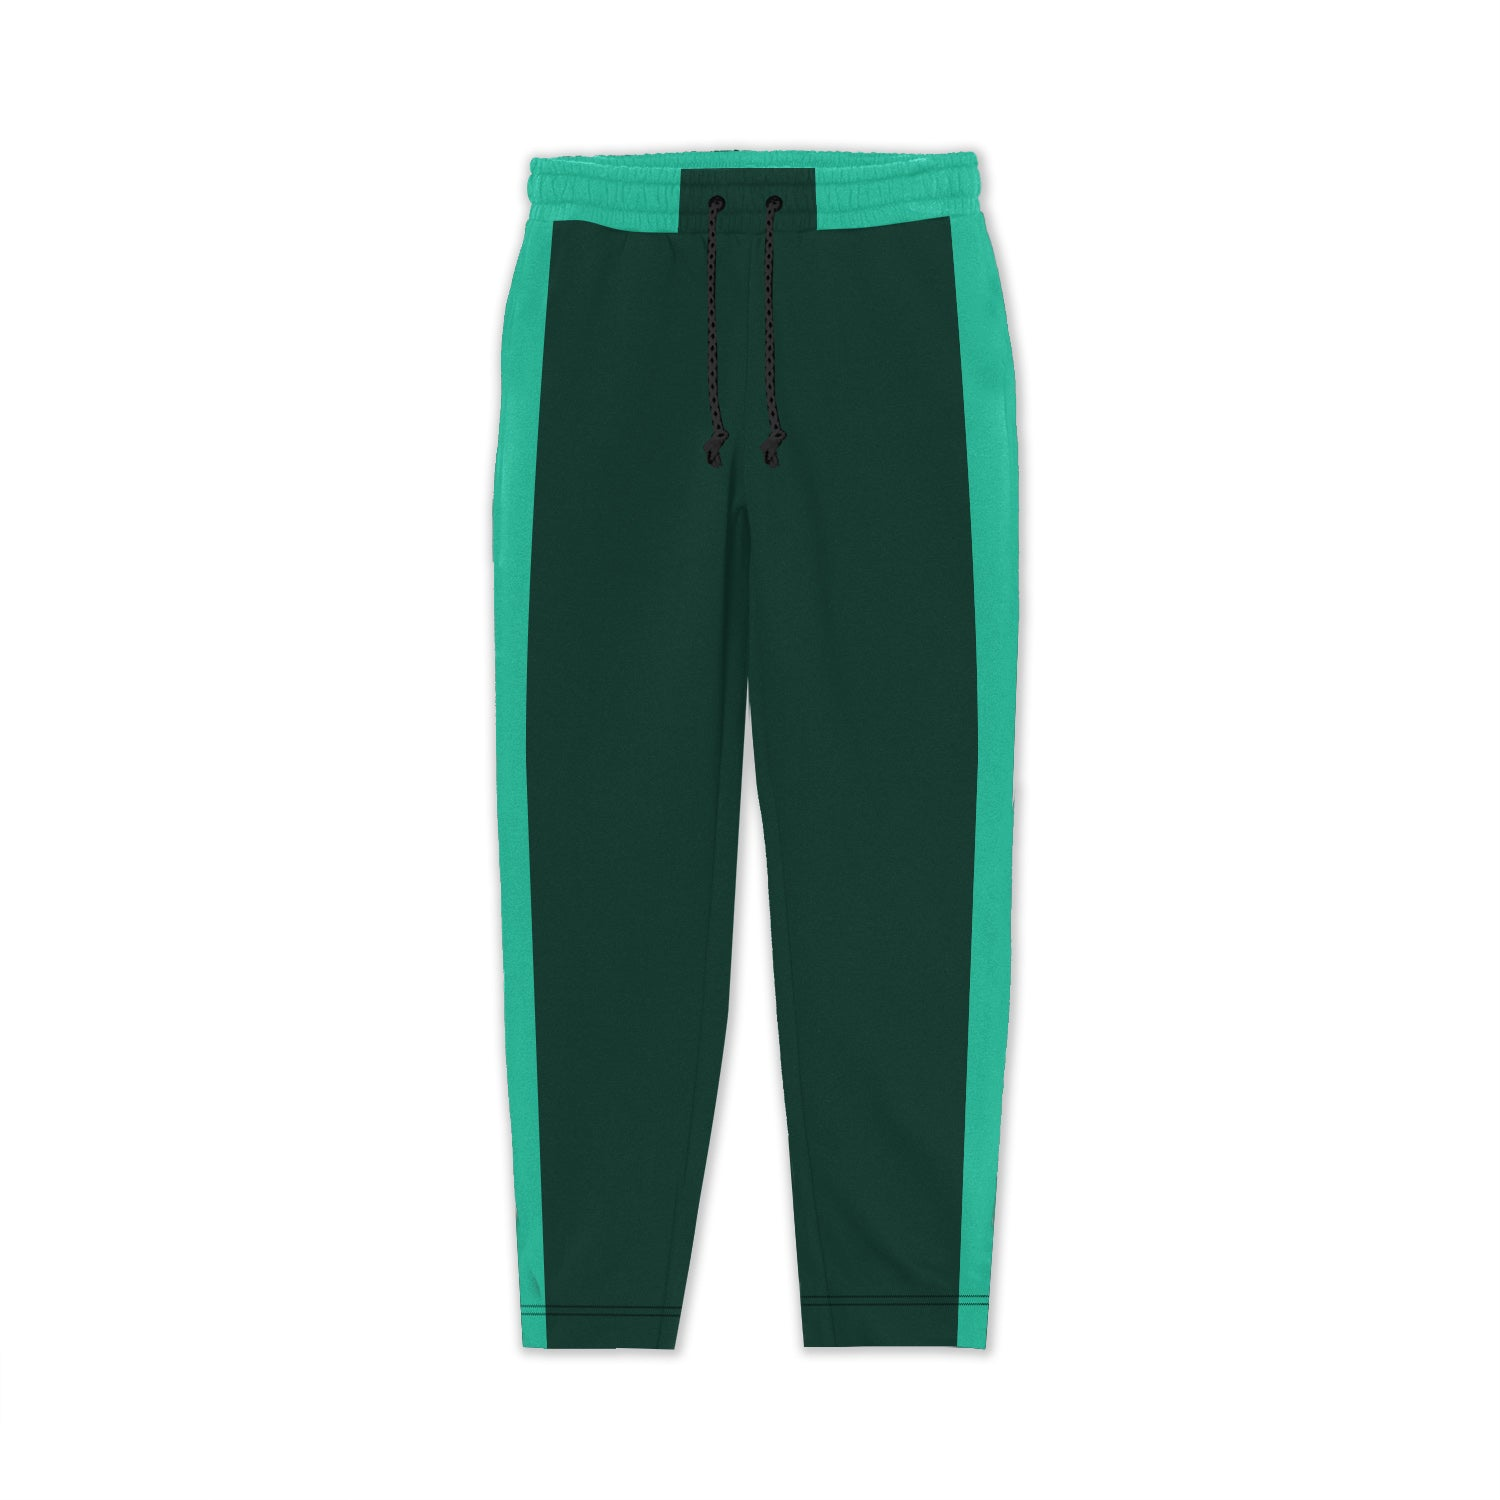 TH Regular Fit Fleece Jogger Trouser For Kids-Dark Green With Cyan Stripes-SP3878